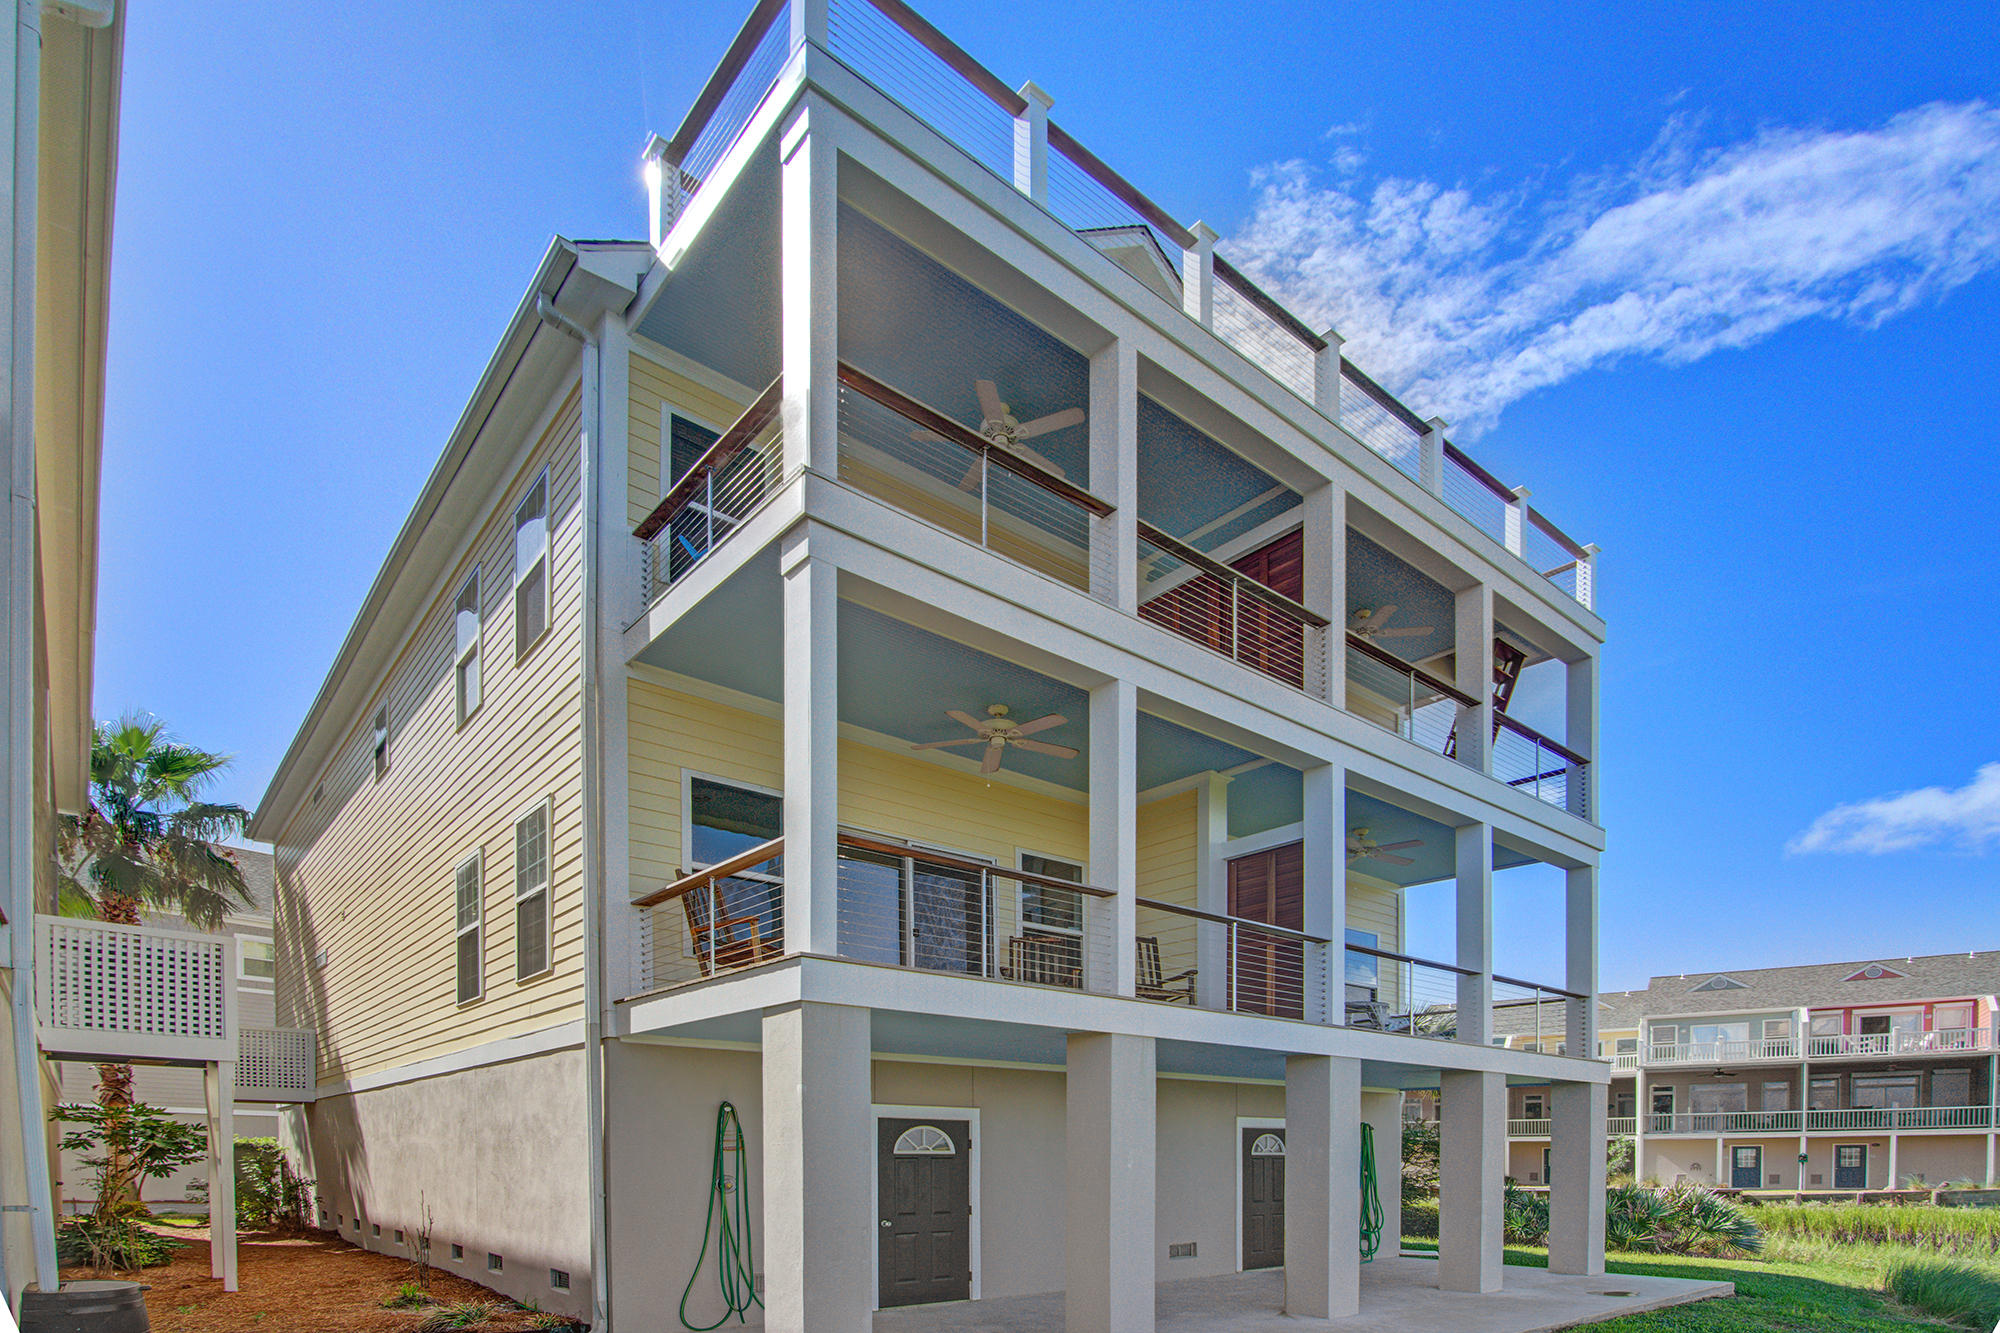 Waters Edge Homes For Sale - 119 2nd, Folly Beach, SC - 1